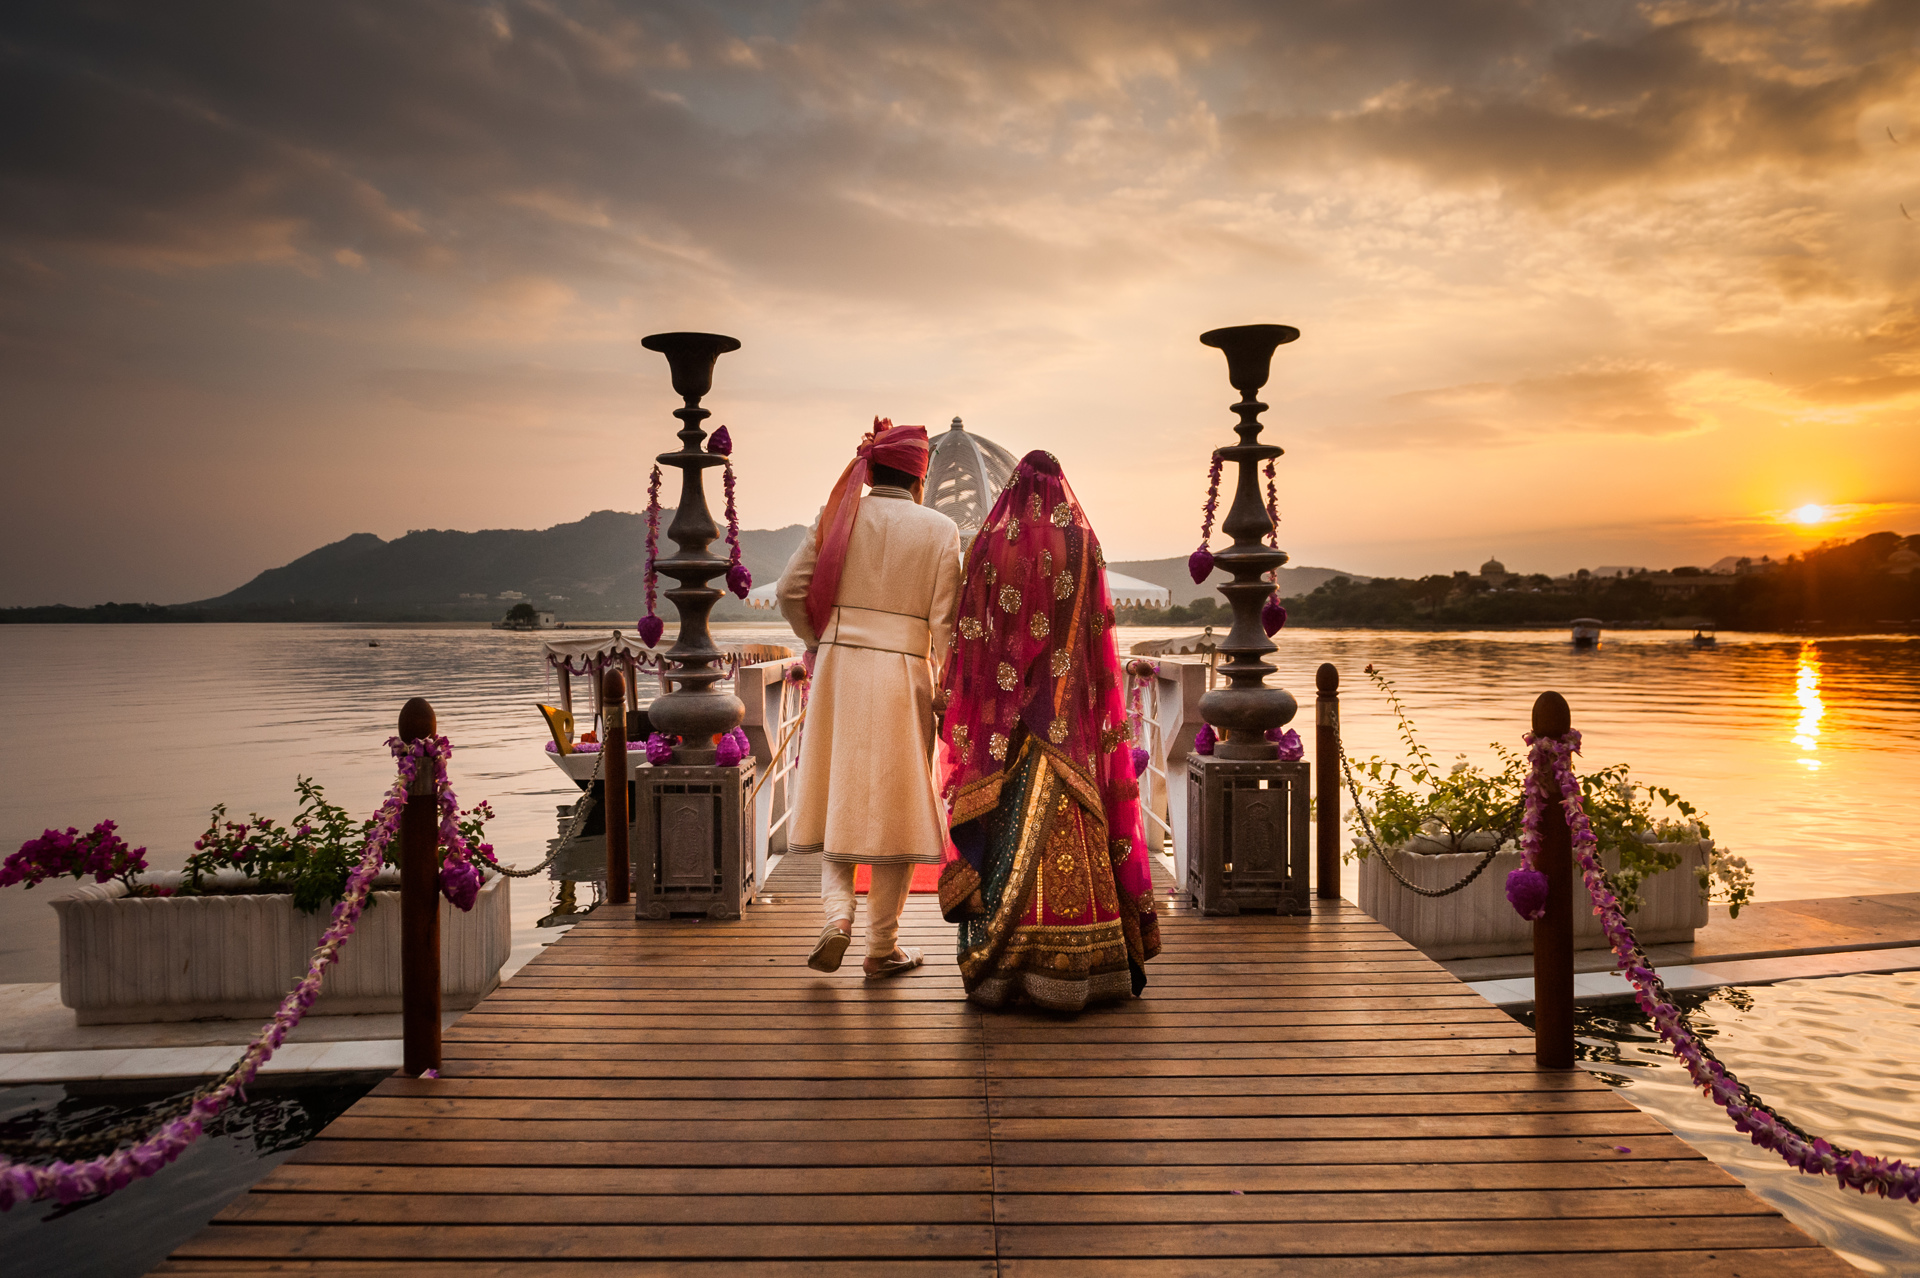 Couple in traditional Indian attire at sunset by Sephi Bergerson